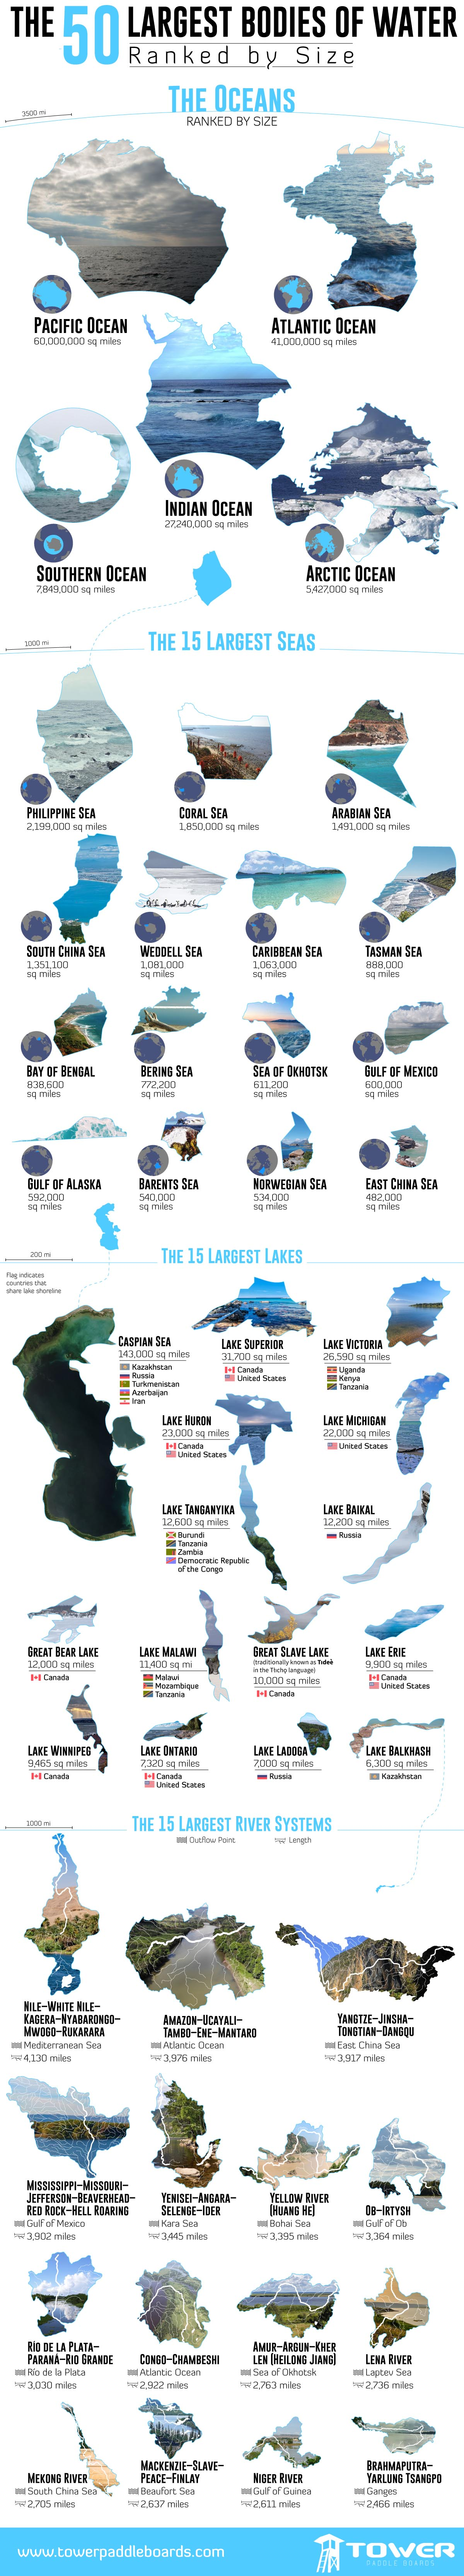 The 50 Largest Bodies of Water Ranked by Size